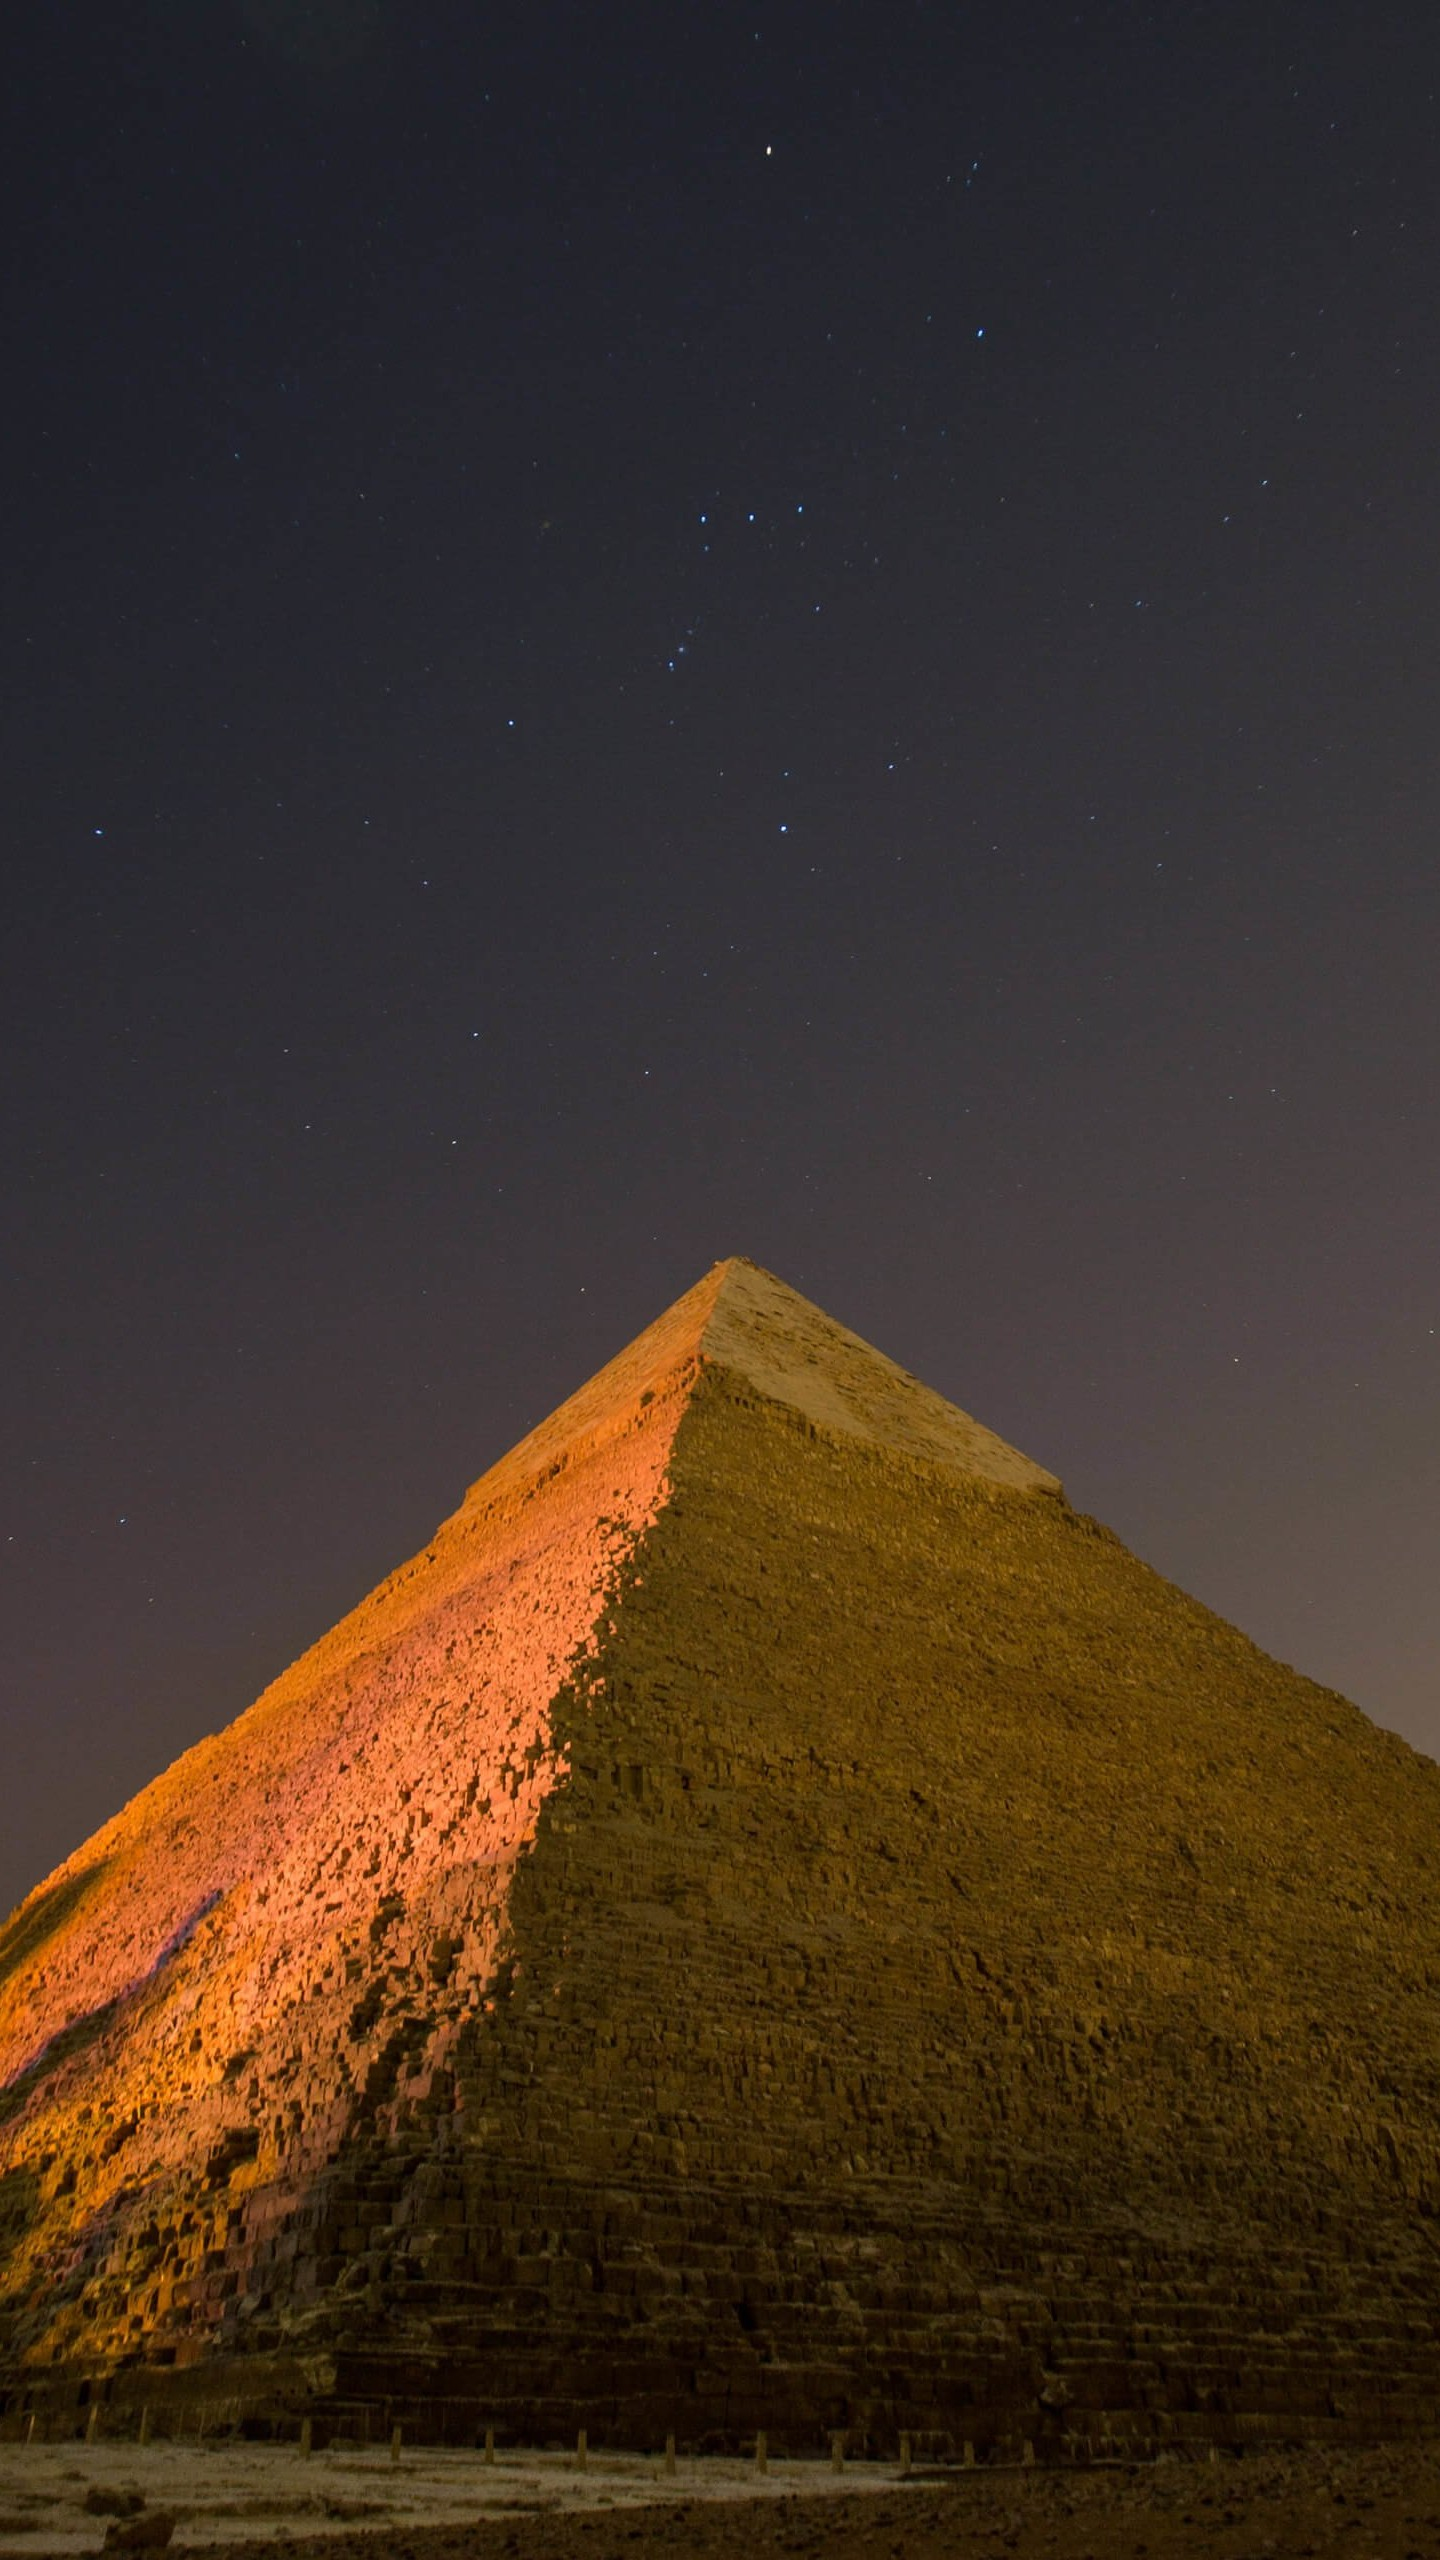 Pyramid by Night Wallpaper for Google Nexus 6